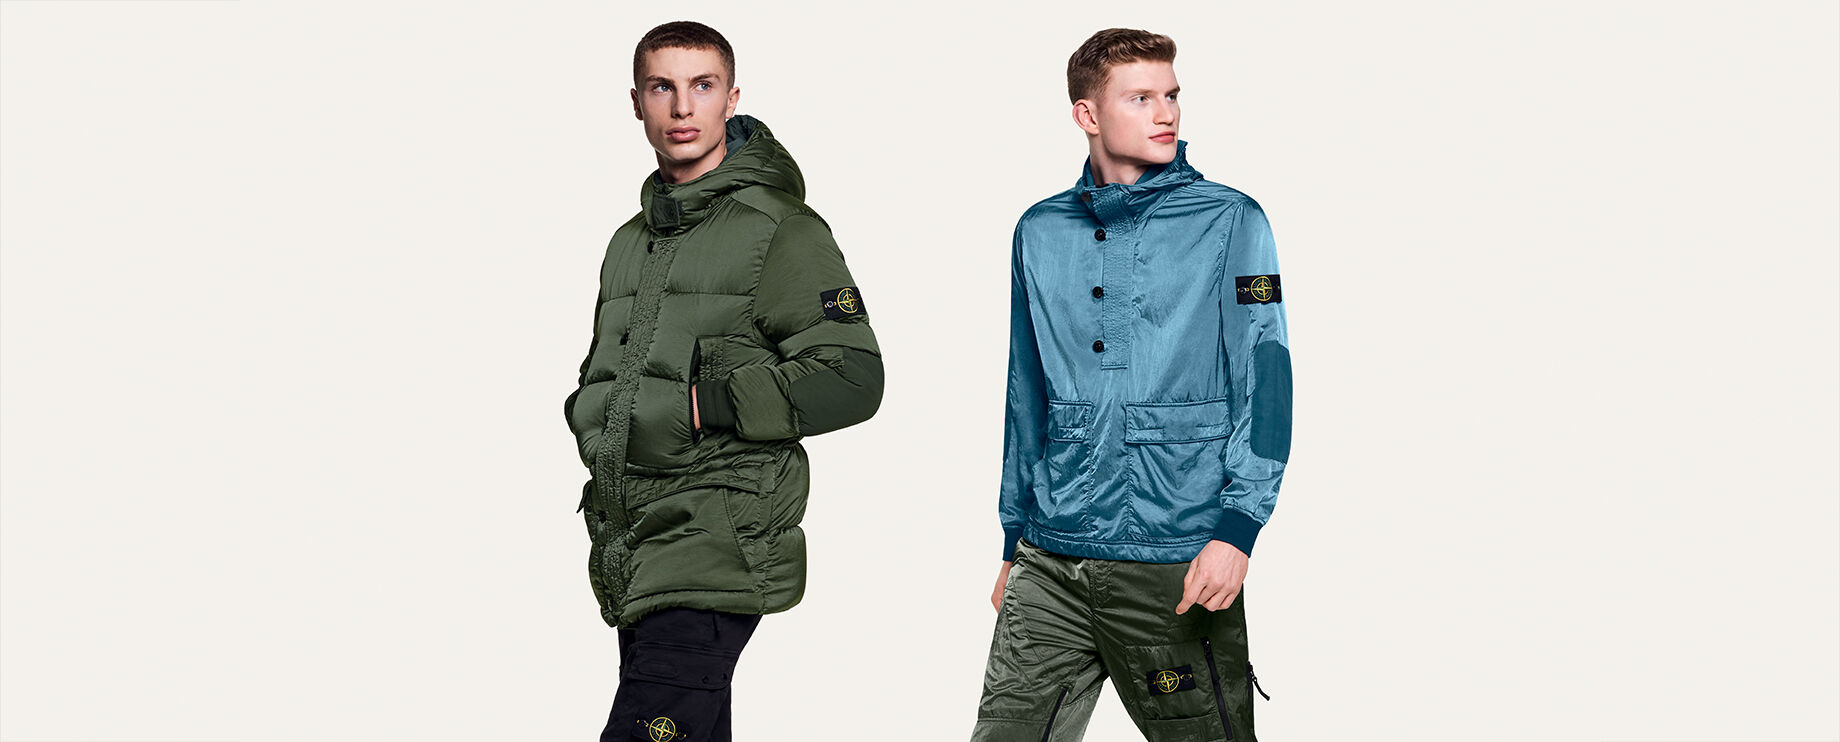 Model in mid-stride wearing a light blue, half-buttoned jacket with two front flap pockets and the Stone Island badge on the upper left sleeve, as well as dark green pants featuring the badge on the left leg.